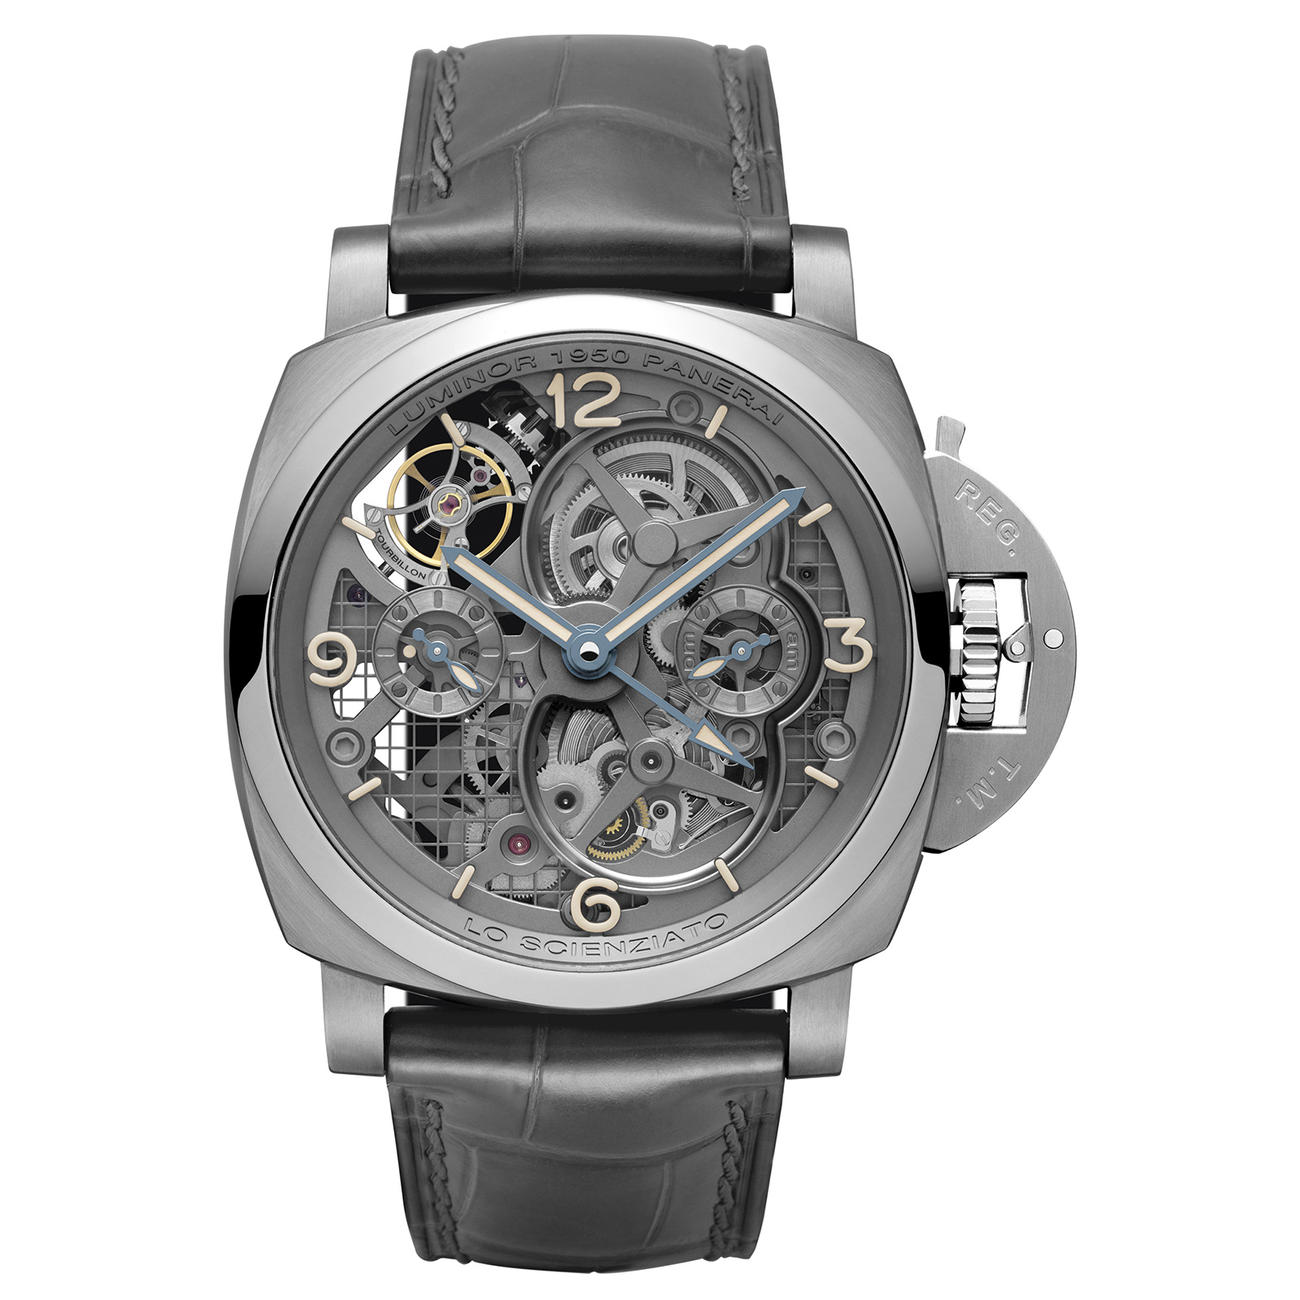 Skeleton Panerai Luminor 1950 Tourbillon GMT PAM00578 replica